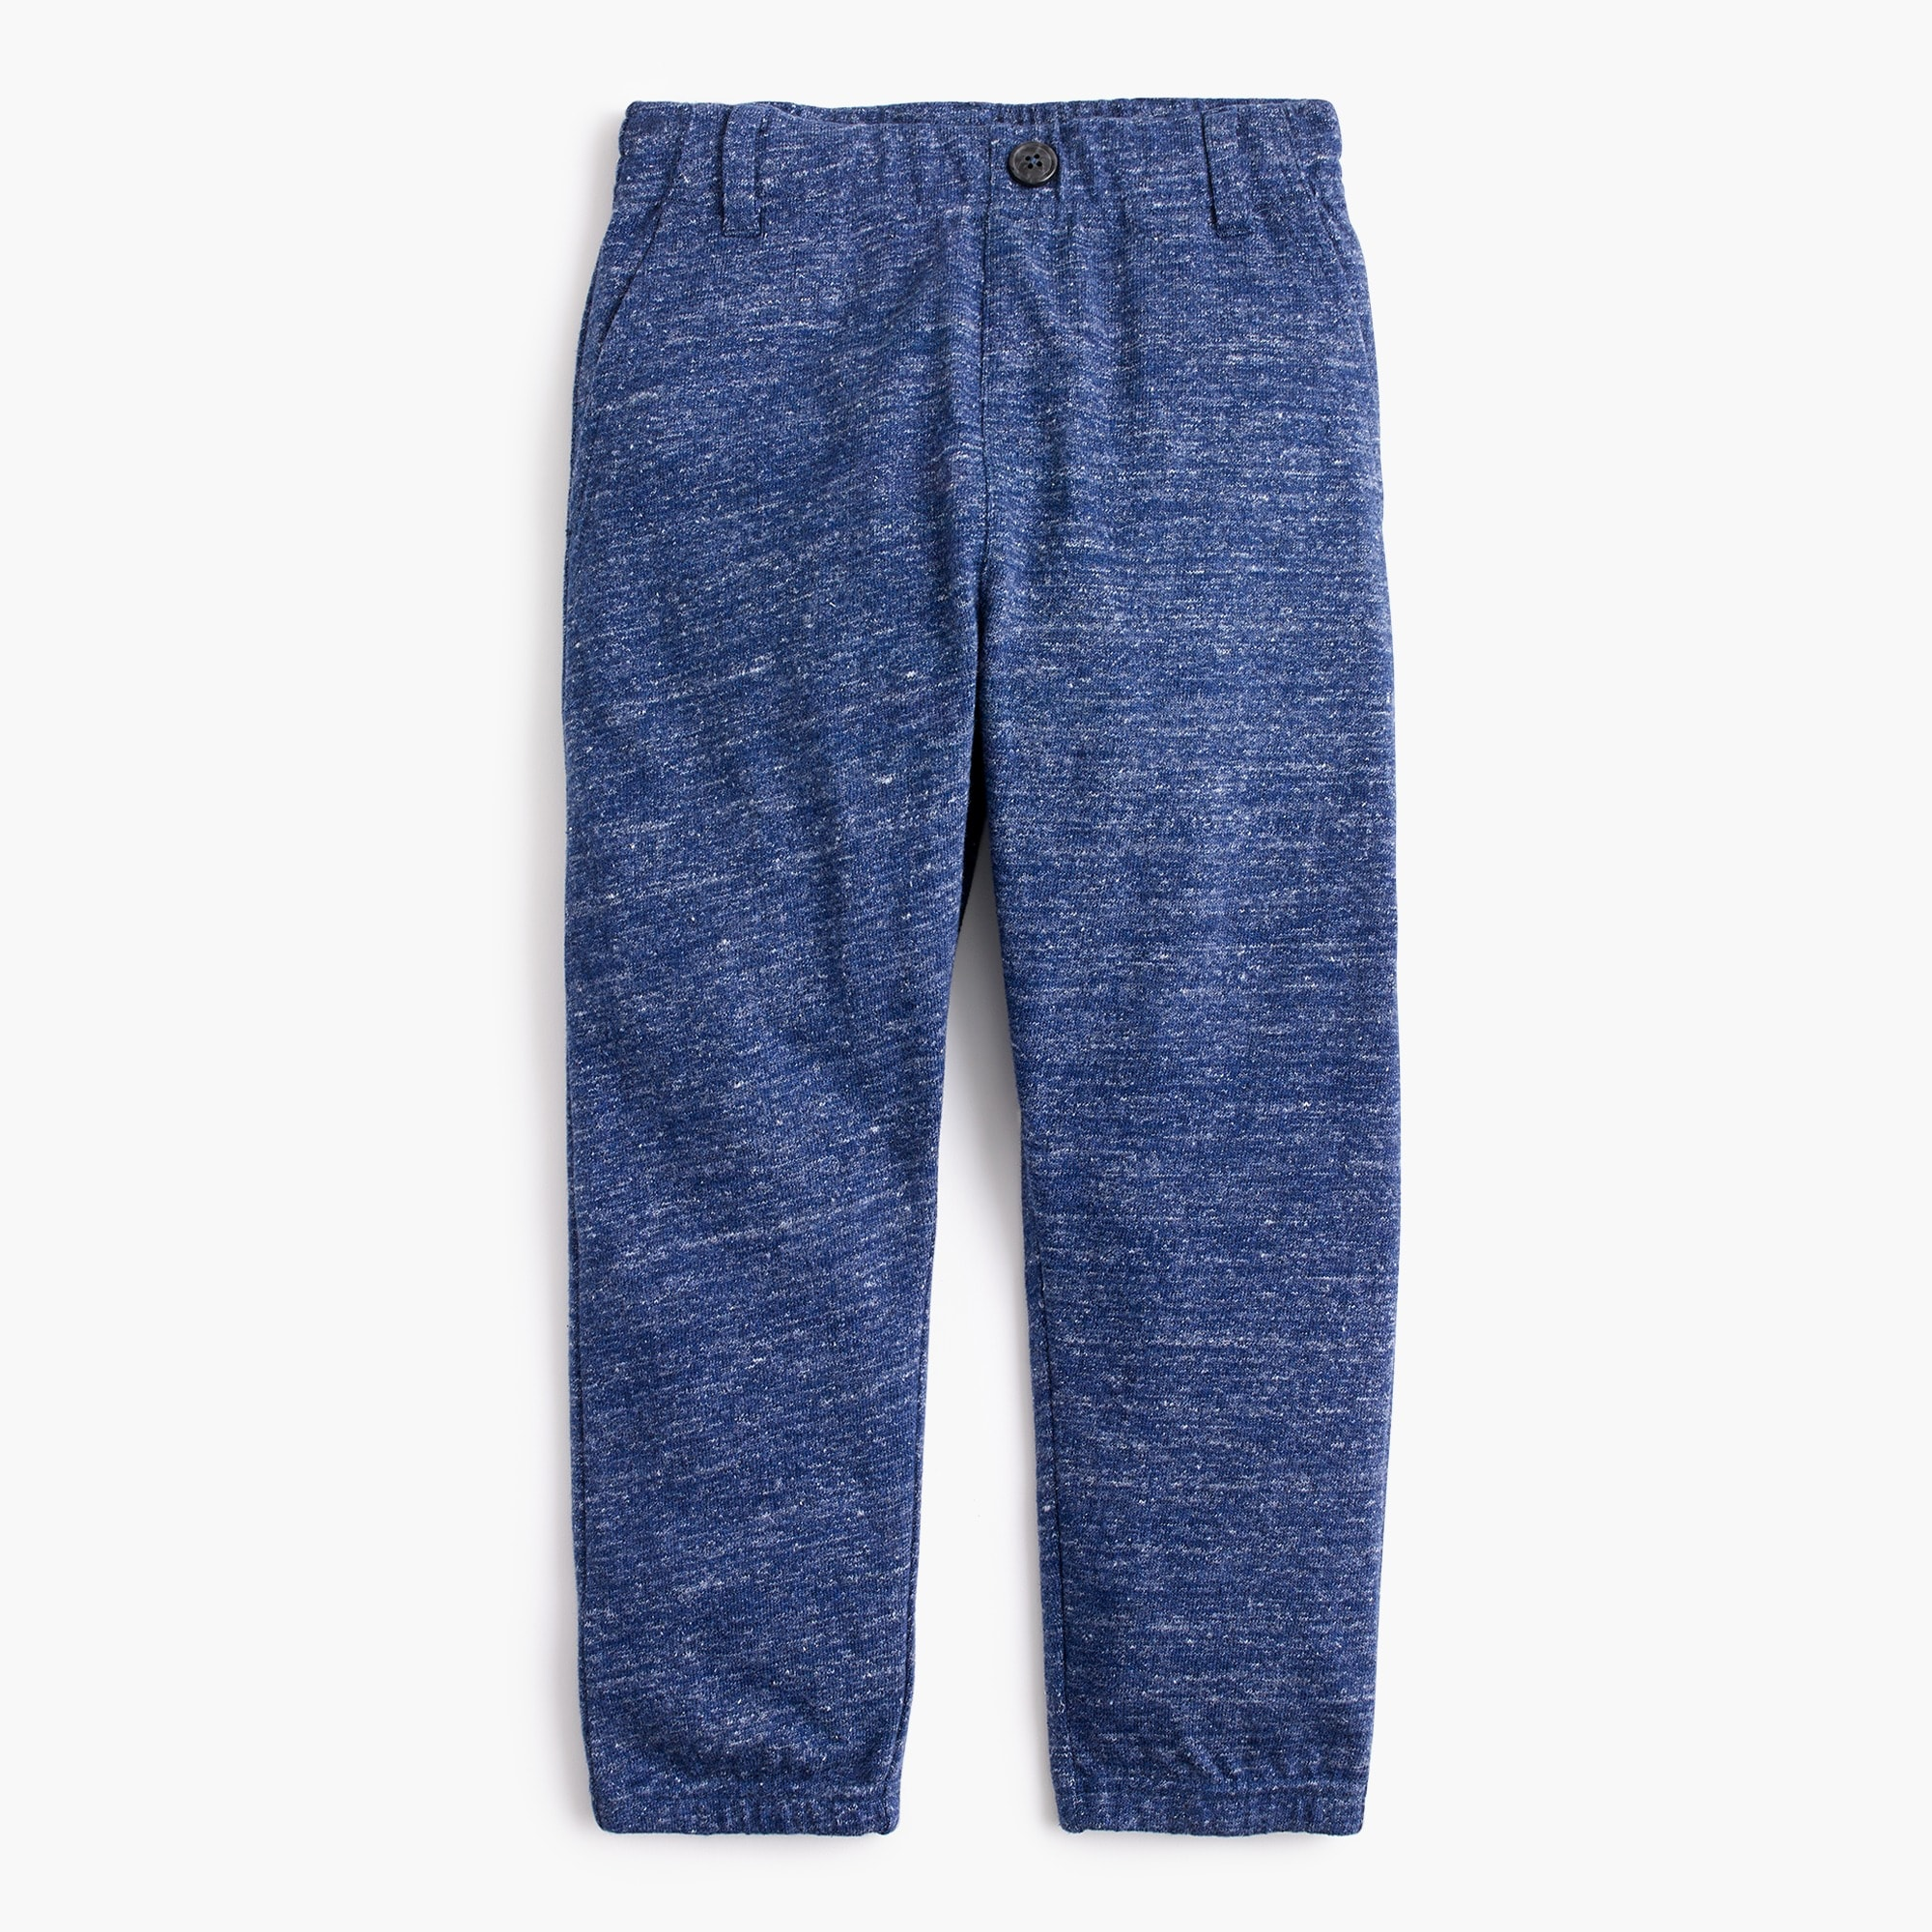 Boys' trouser sweatpant boy sweatshirts & sweatpants c